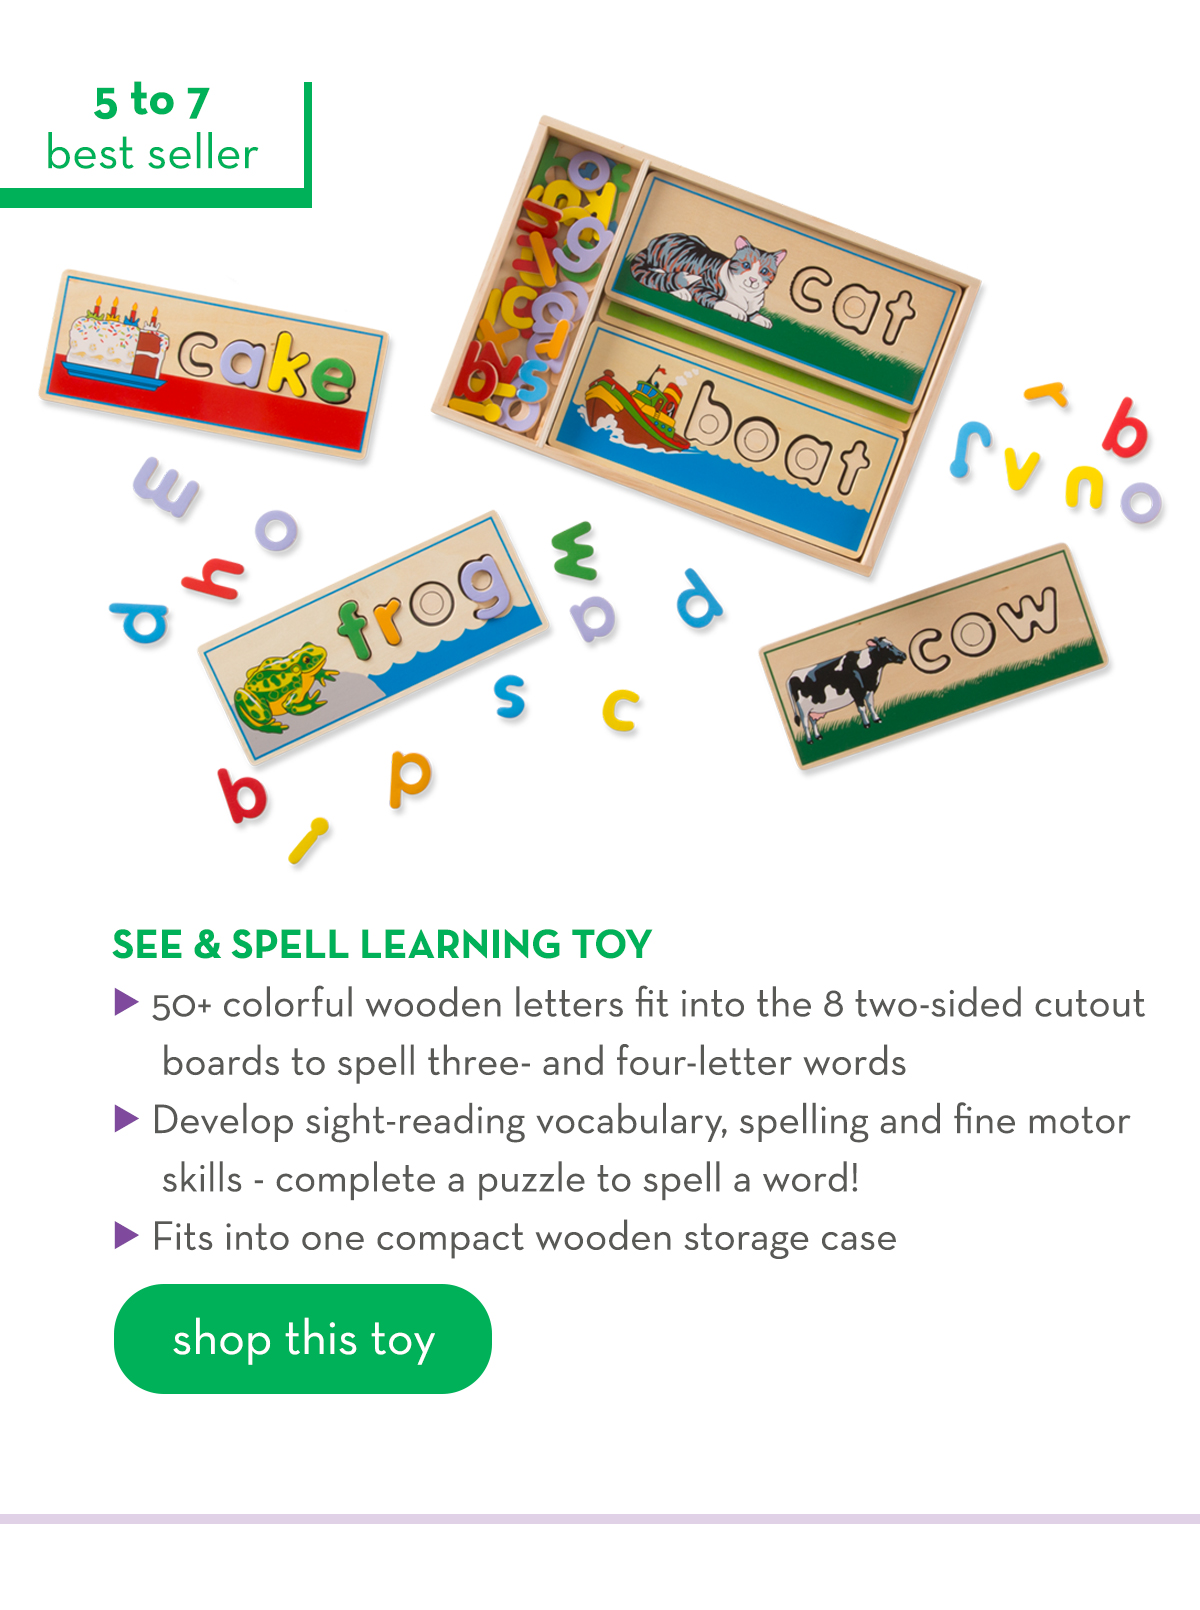 5 to 7 - See & Spell Learning Toy